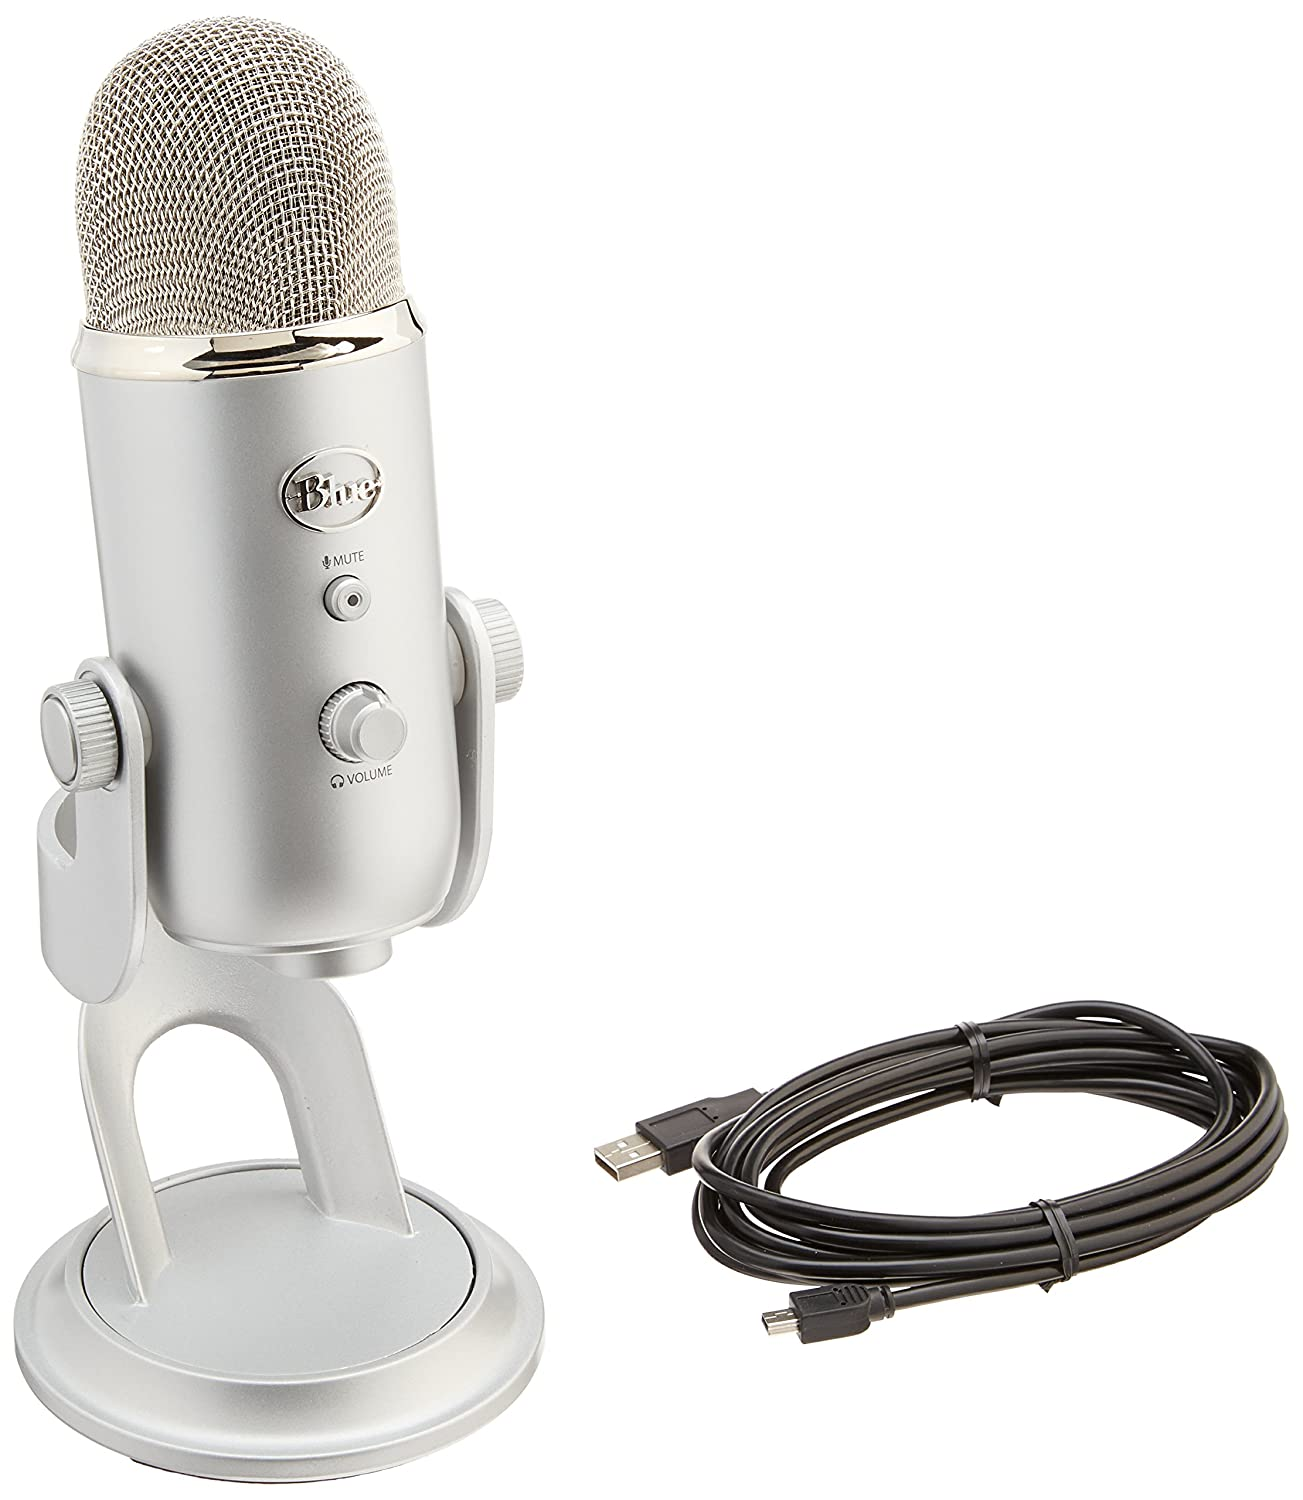 10 best vocal recording mics under 300 to record quality audio for year 2017. Black Bedroom Furniture Sets. Home Design Ideas